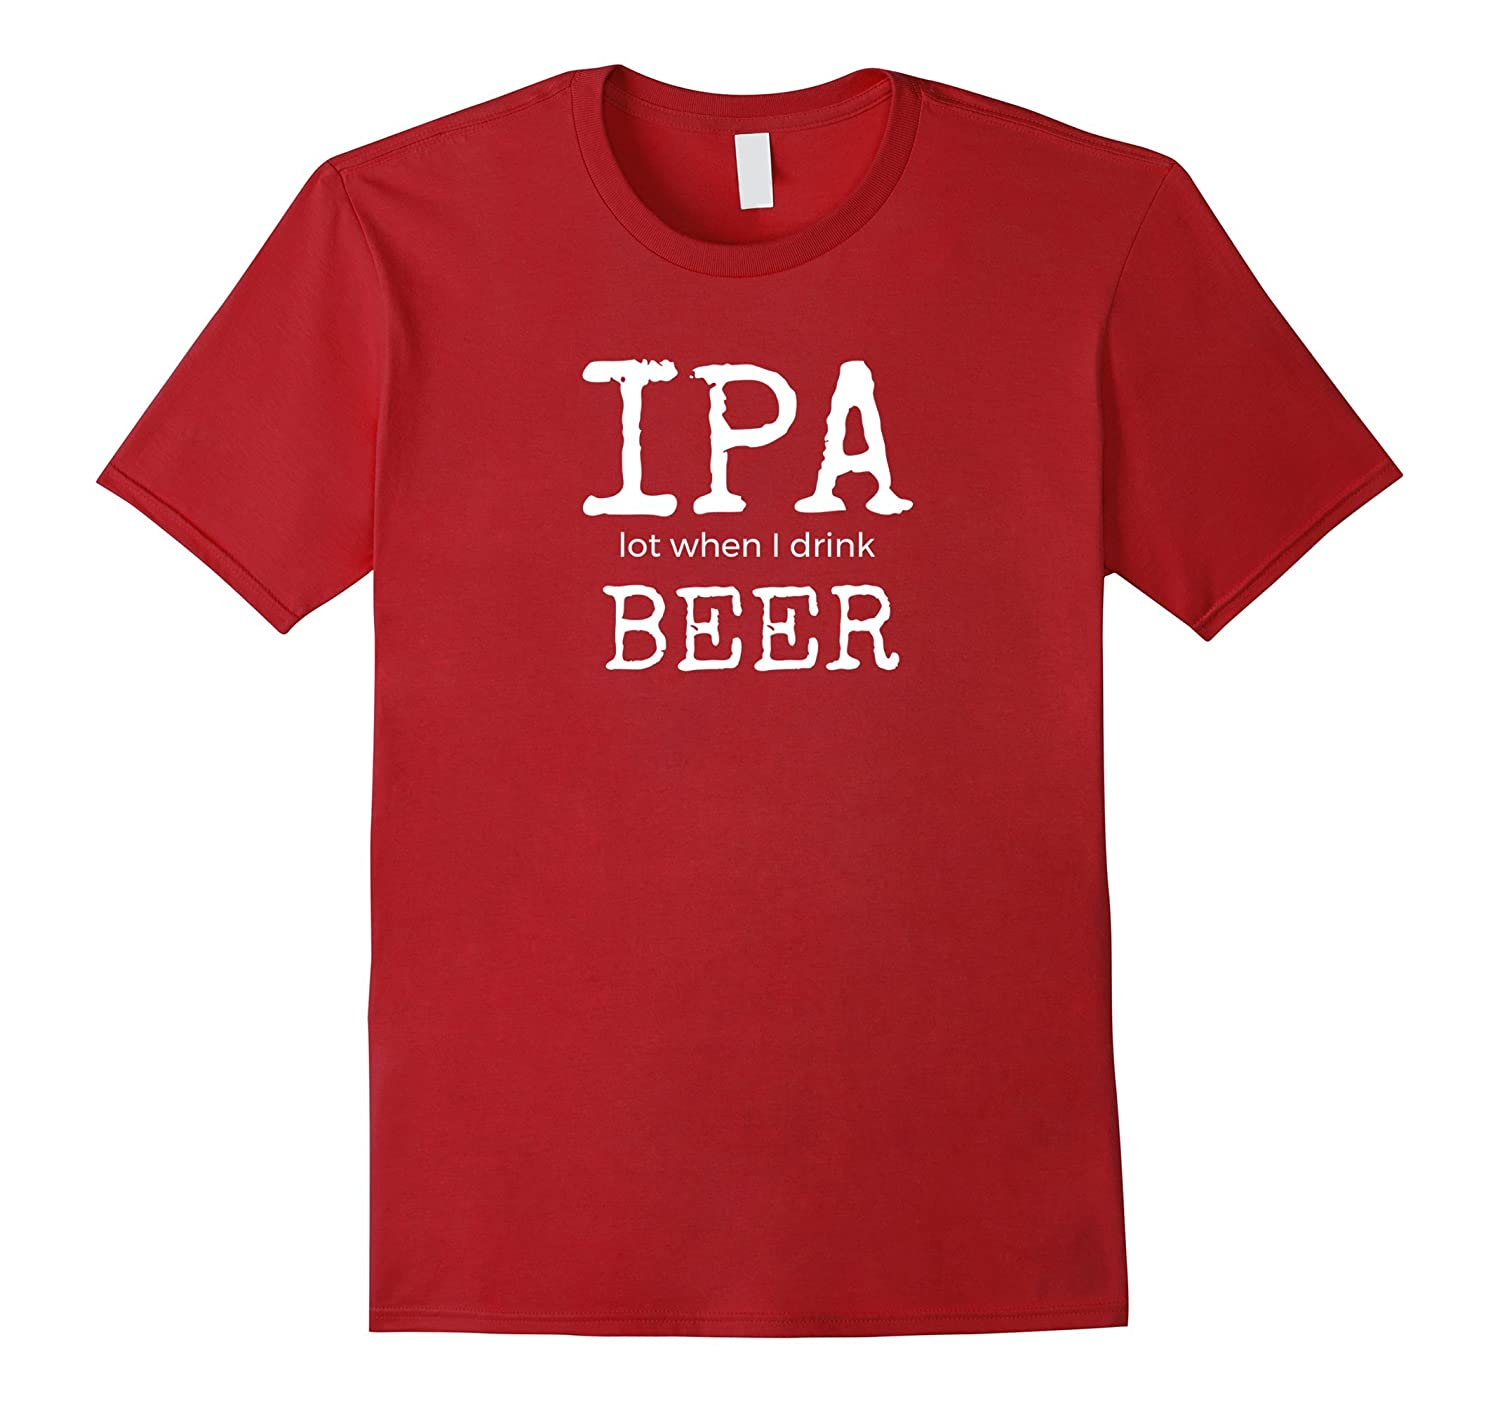 IPA LOT WHEN I DRINK ALCOHOL FUNNY T-SHIRT APPAREL GIFTS